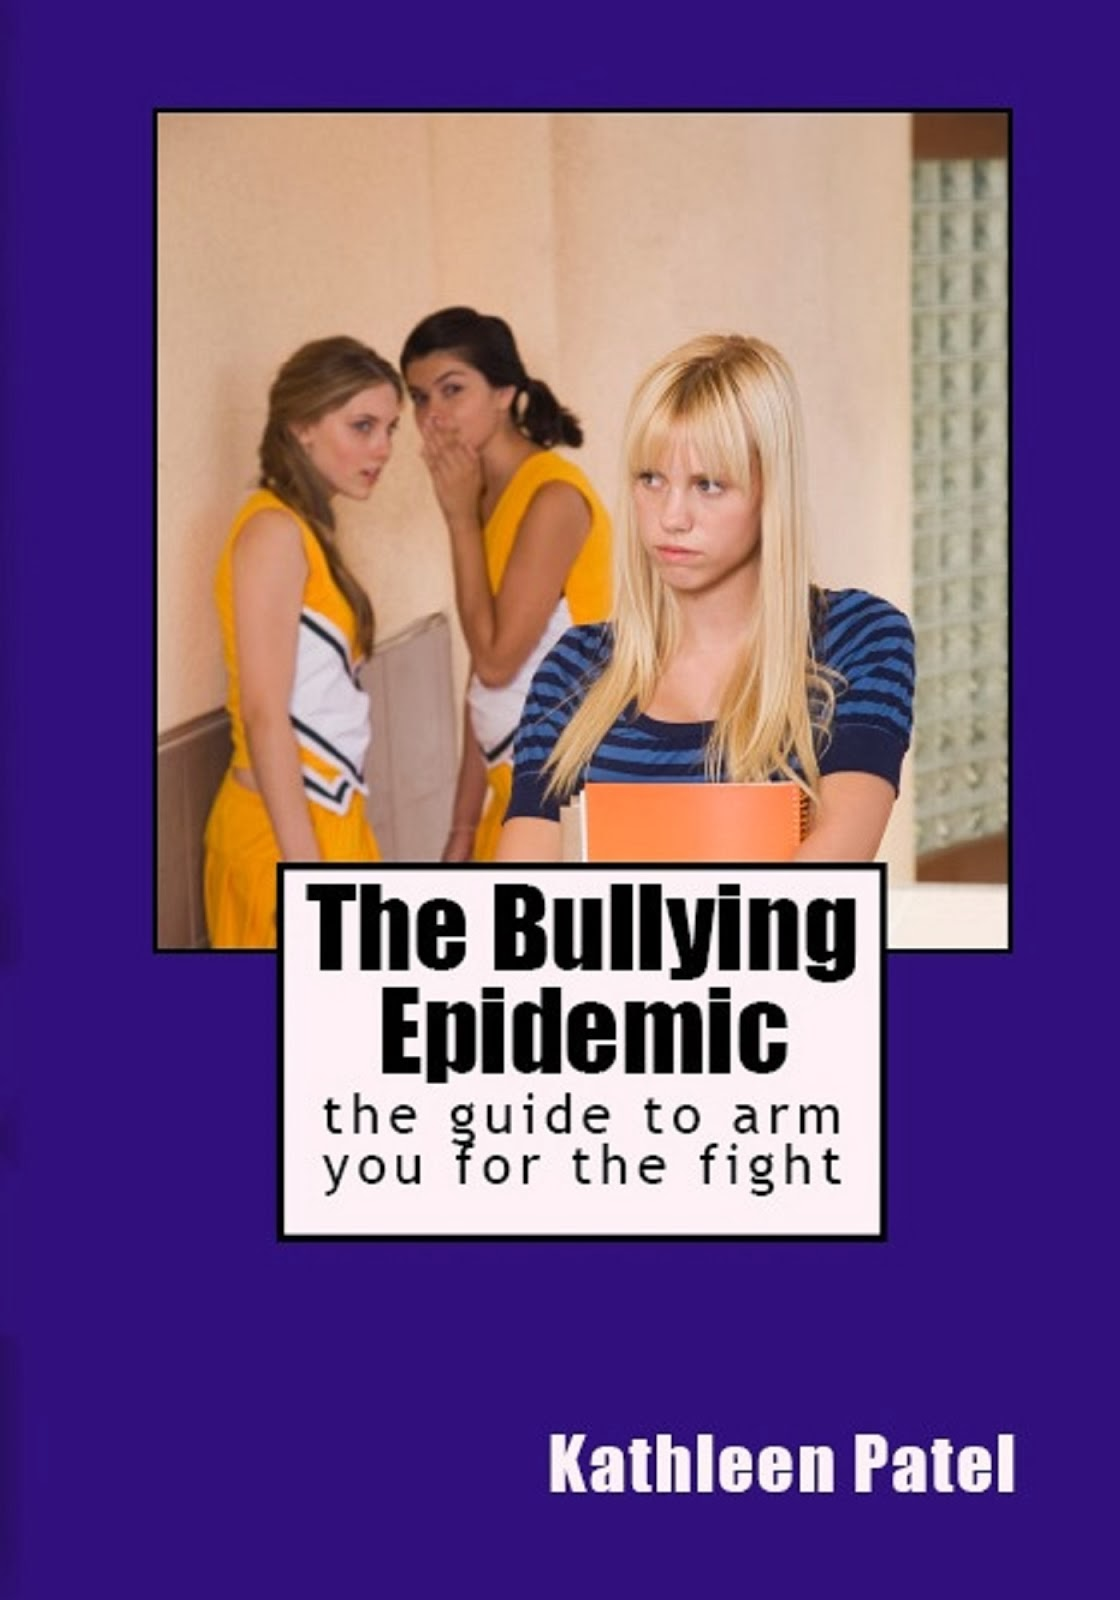 Bullying Epidemic